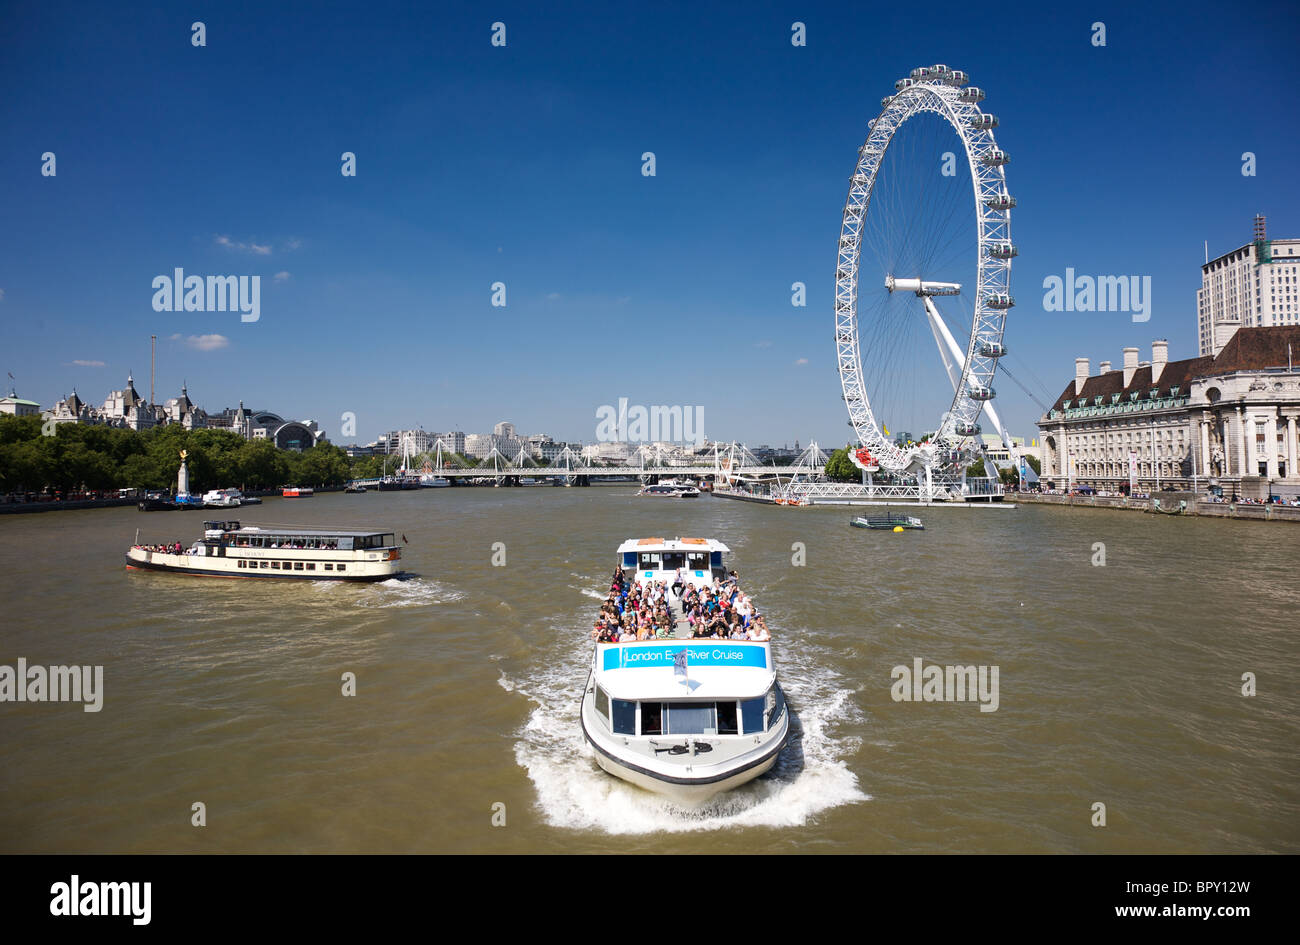 River Cruise boat on the River Thames with the London Eye in the background, London - Stock Image